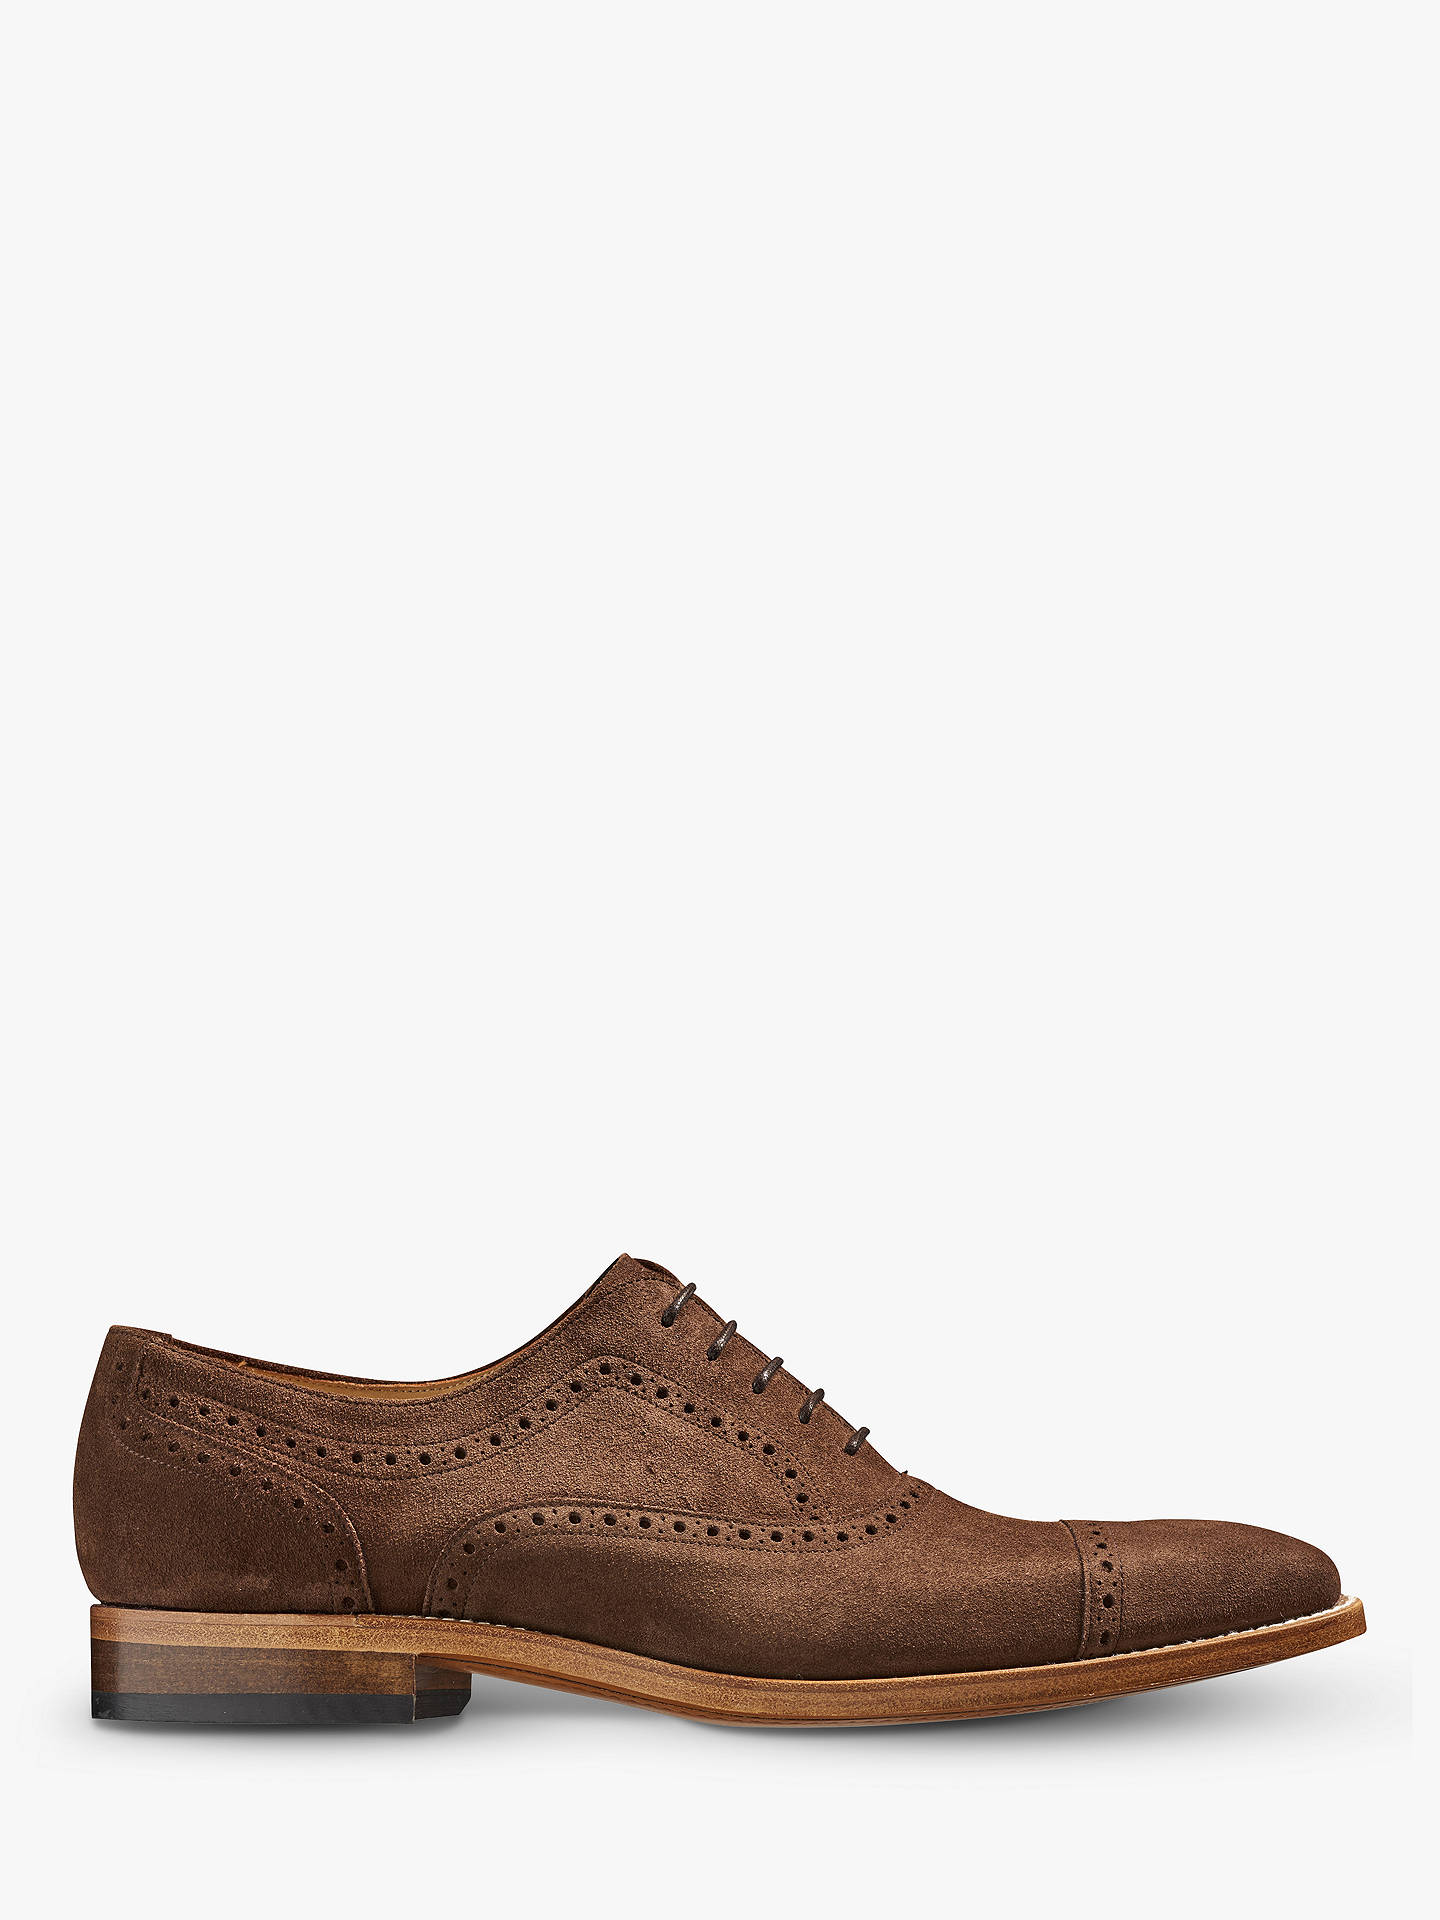 BuyBarker Luke Suede Goodyear Welted Brogue Shoes, Castagnia Suede, 8 Online at johnlewis.com